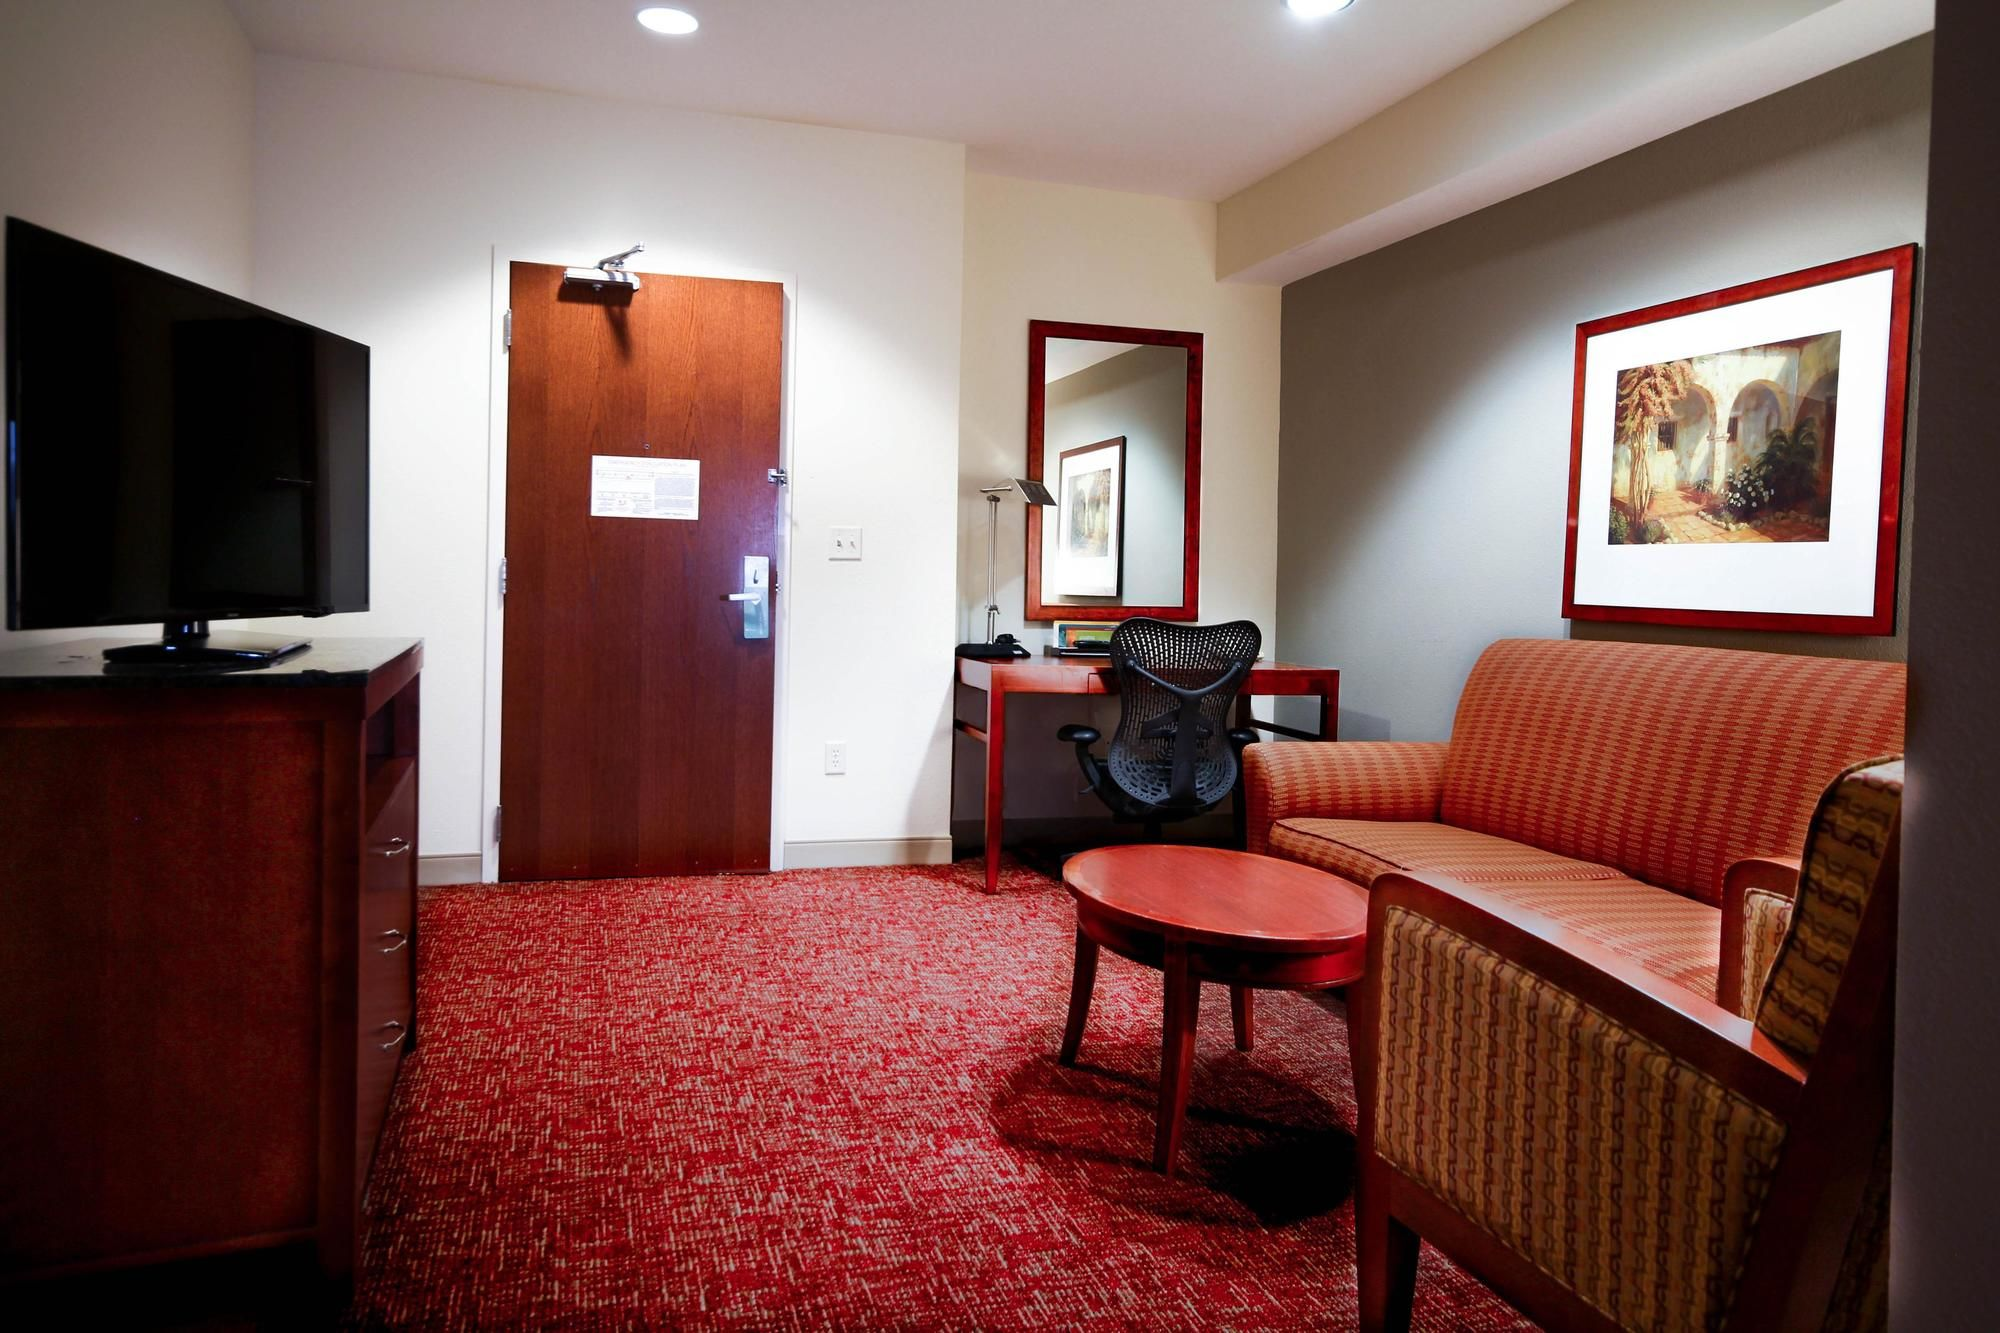 Elkhart Hotel Coupons for Elkhart Indiana FreeHotelCoupons